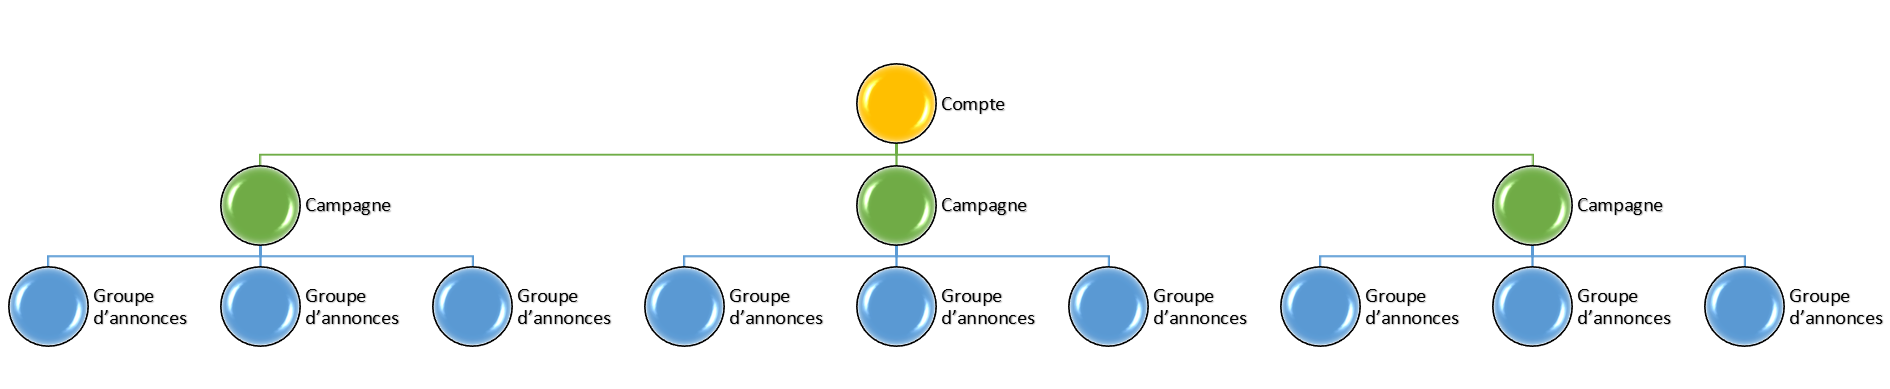 structure-campagne